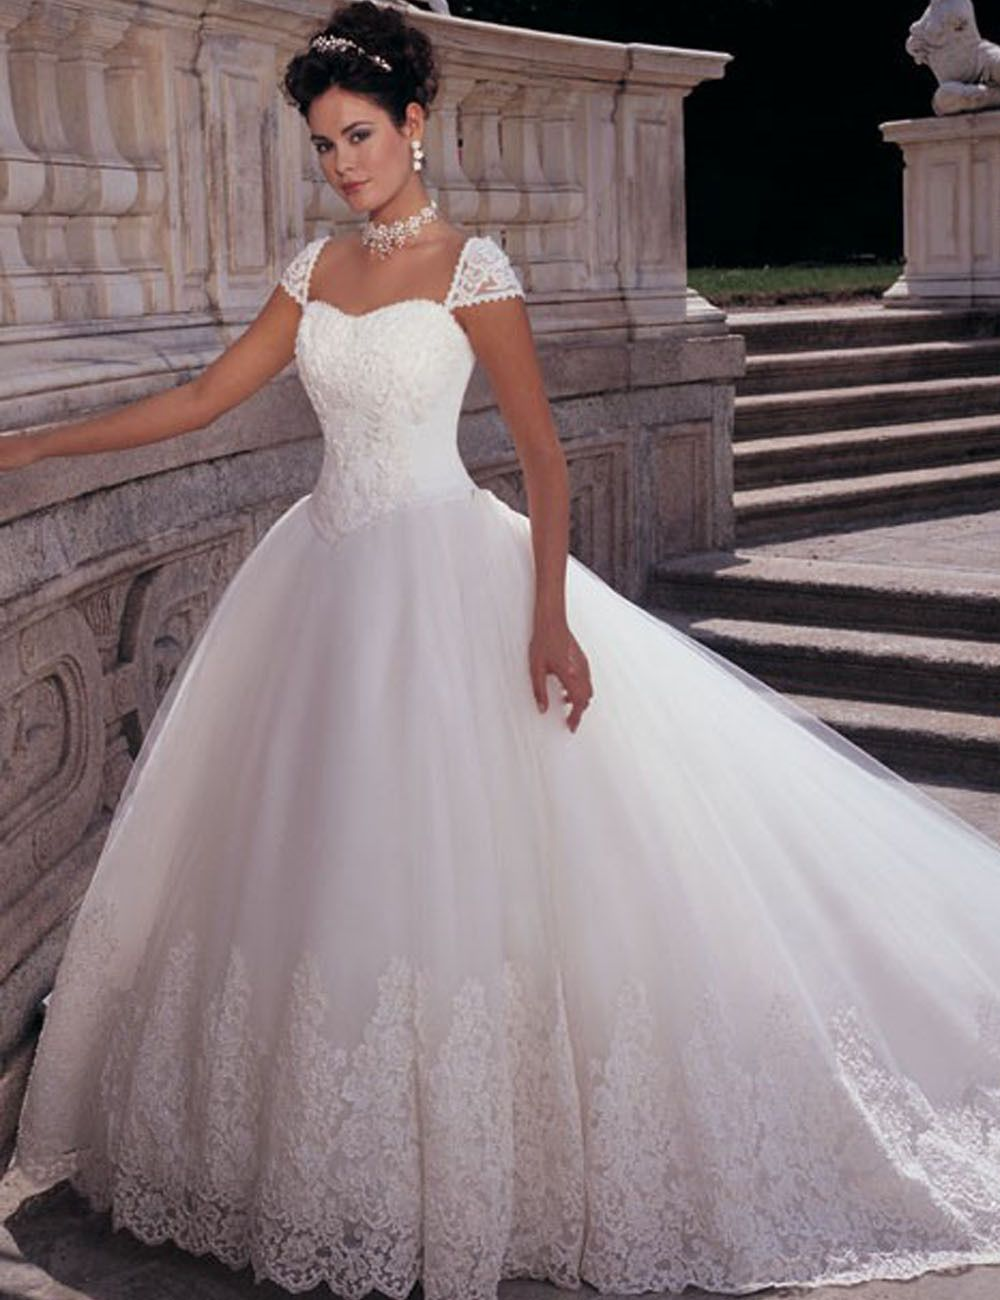 Fairytale wedding dresses google search disney wedding for Fairytale ball gown wedding dresses